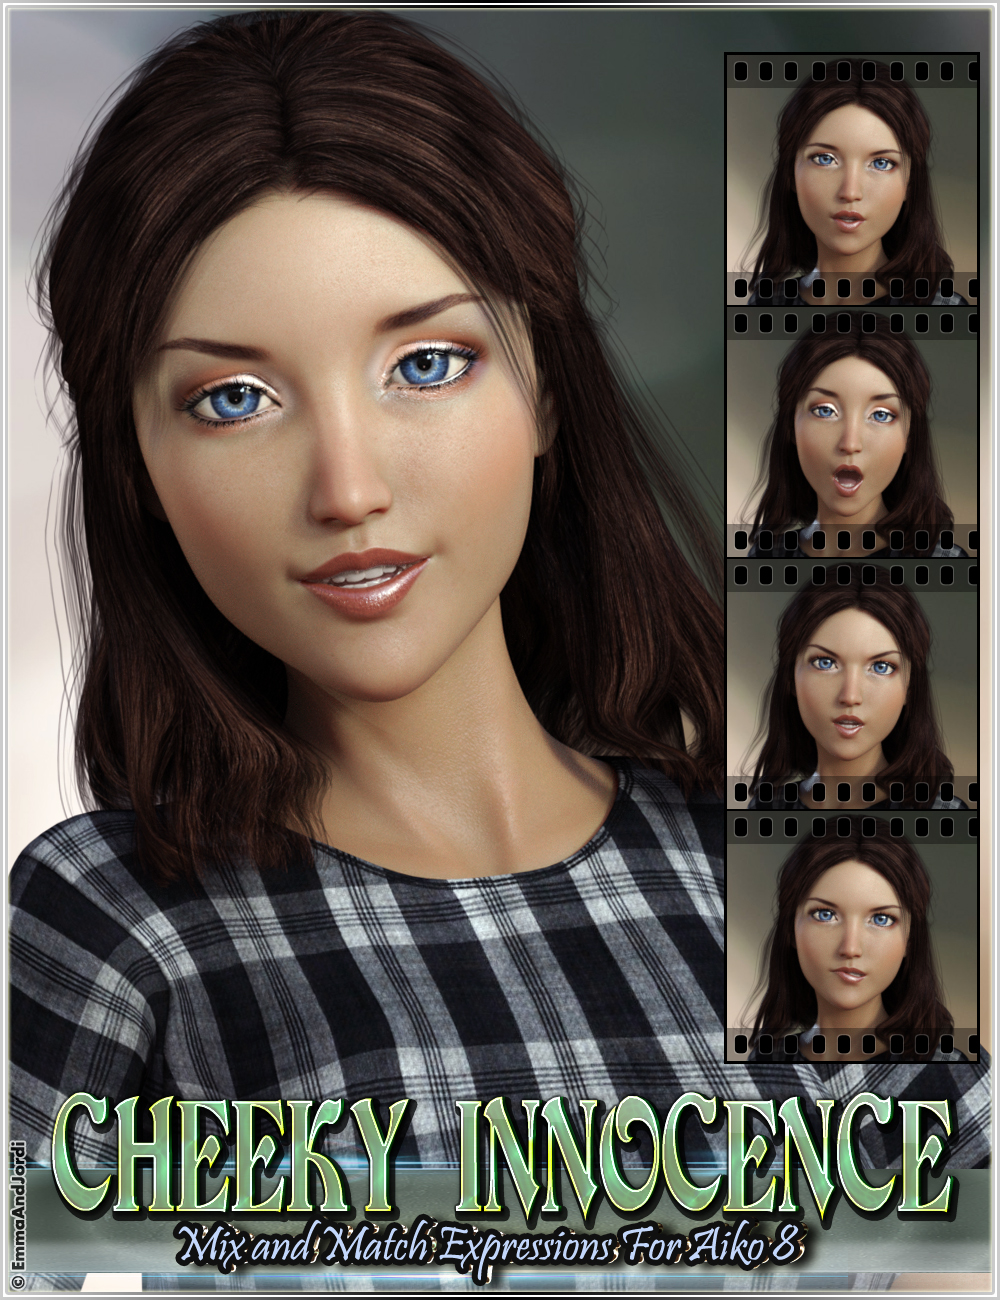 Cheeky Innocence Mix and Match Expressions for Aiko 8 and Genesis 8 Female(s) by: EmmaAndJordi, 3D Models by Daz 3D